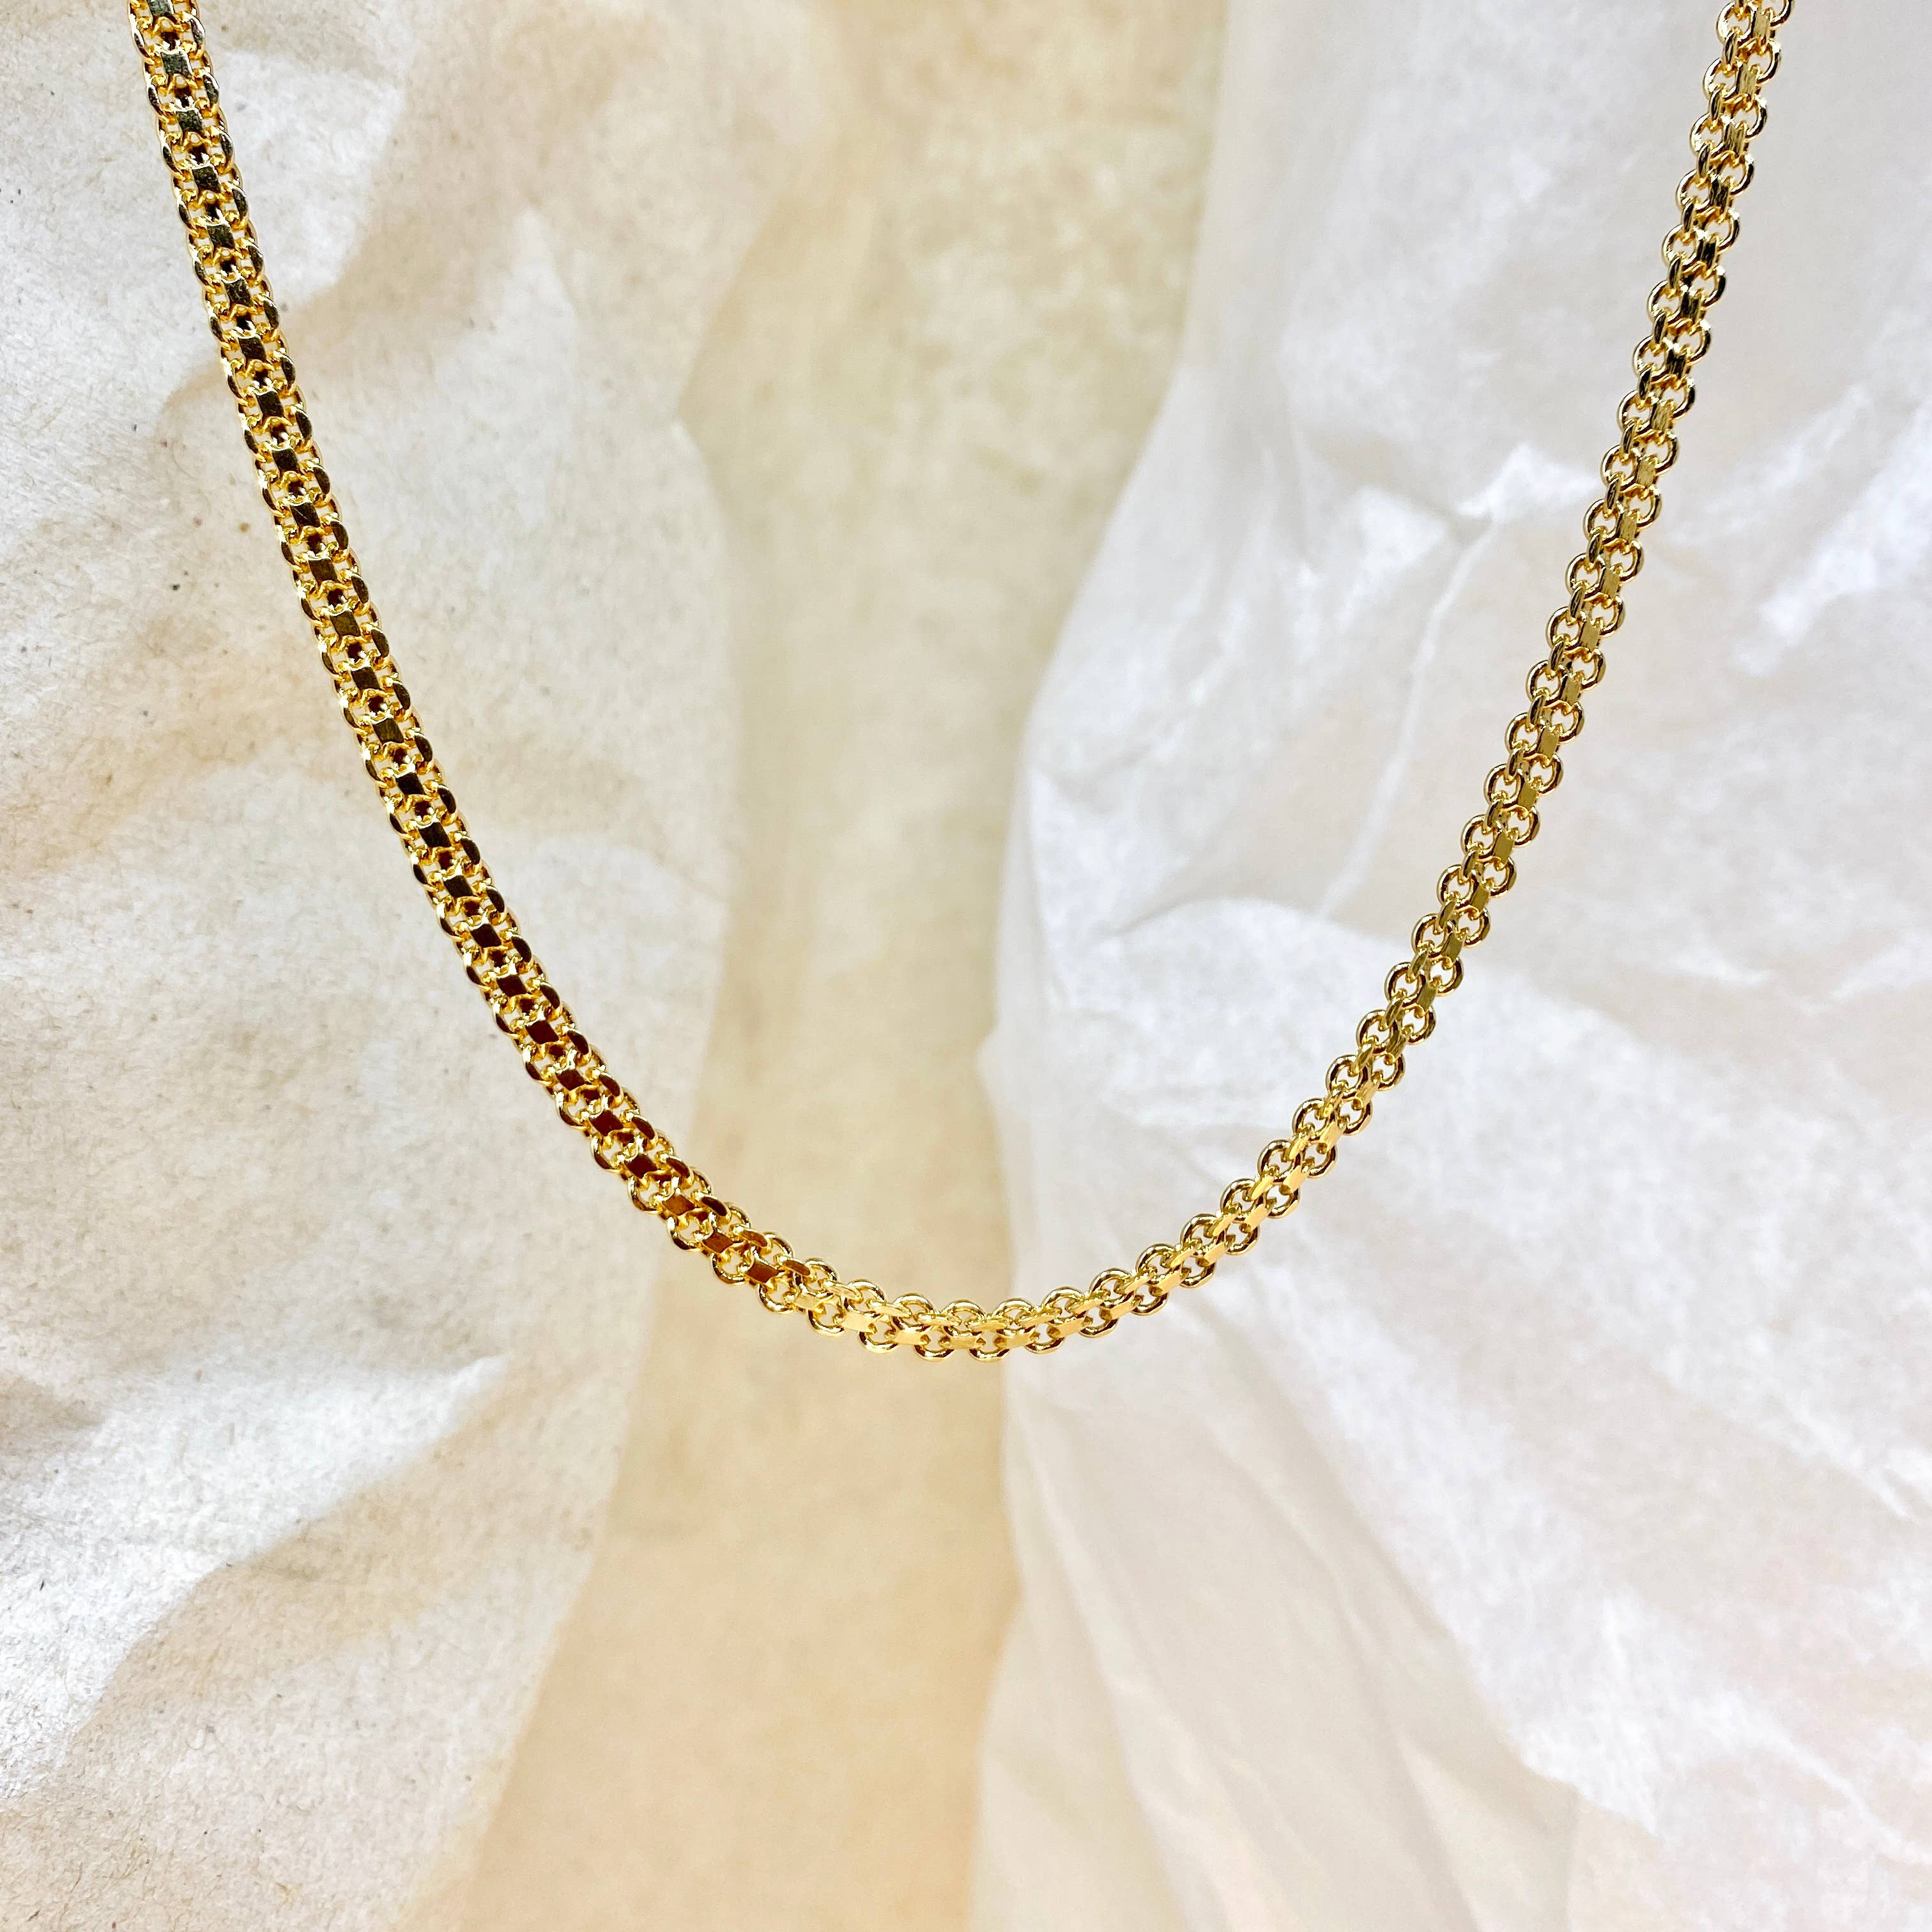 26+ Gold filled jewelry wholesale los angeles ideas in 2021